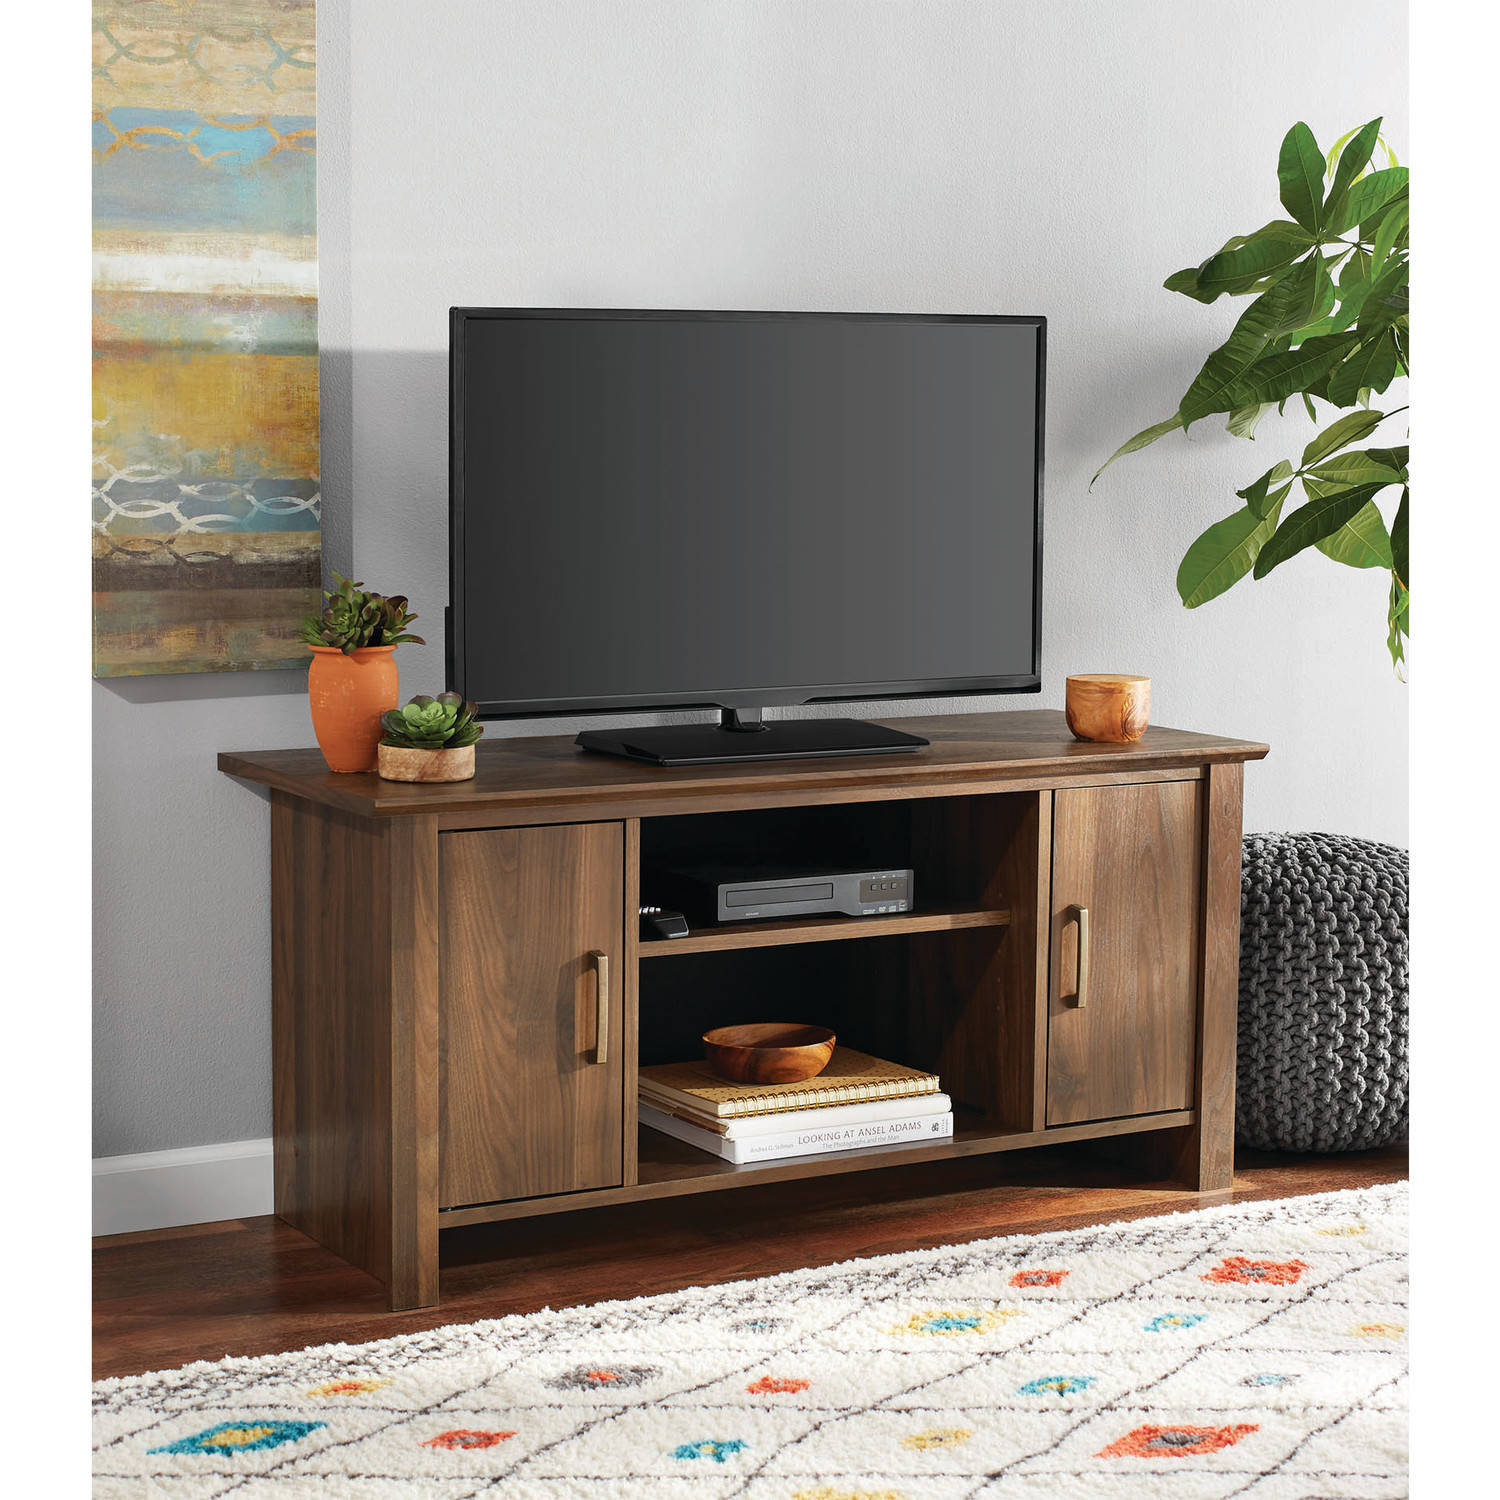 "Mainstays Tv Stand For Flat Screen Tvs Up To 47"", Canyon Walnut intended for Canyon 64 Inch Tv Stands (Image 18 of 30)"